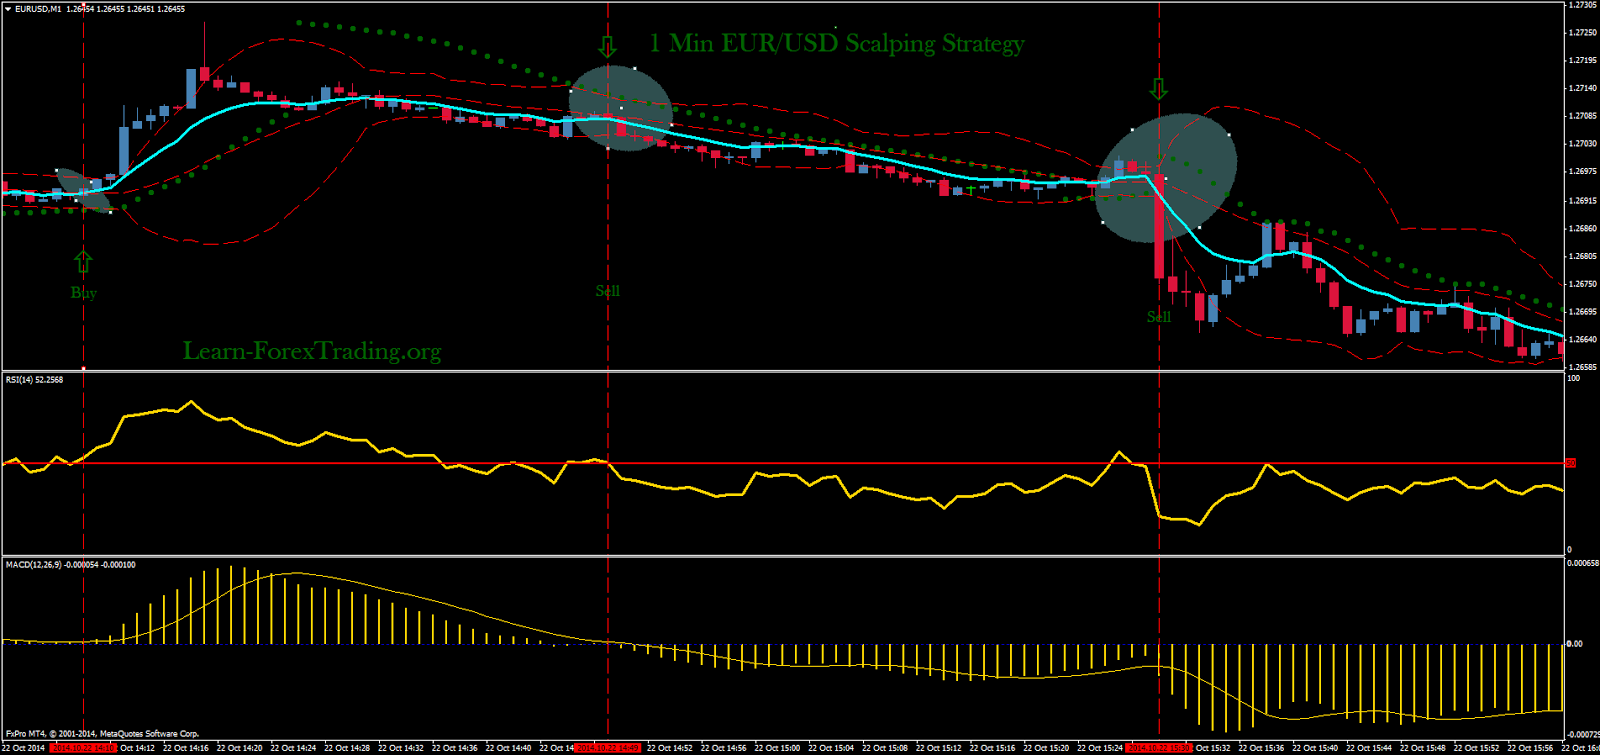 Forex trading eur usd strategies